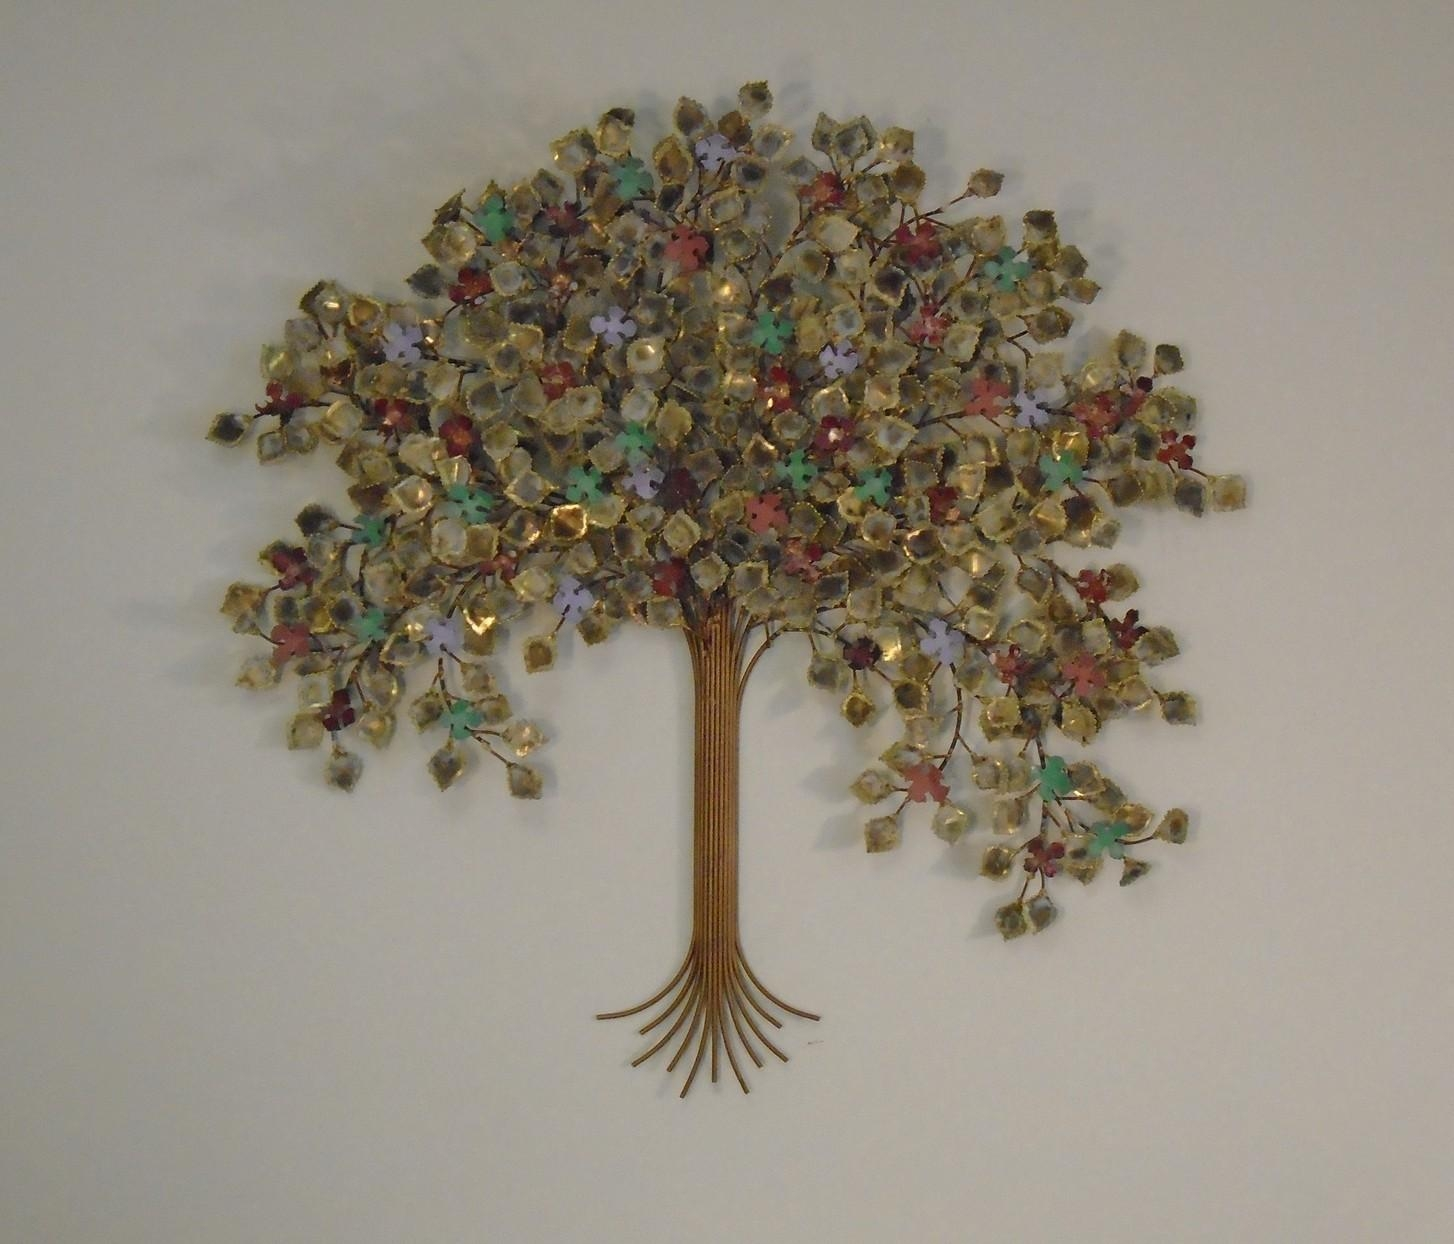 Trees – Wall Art – Metal Sculpture – Metal Decor Regarding Metal Tree Wall Art Sculpture (View 9 of 20)